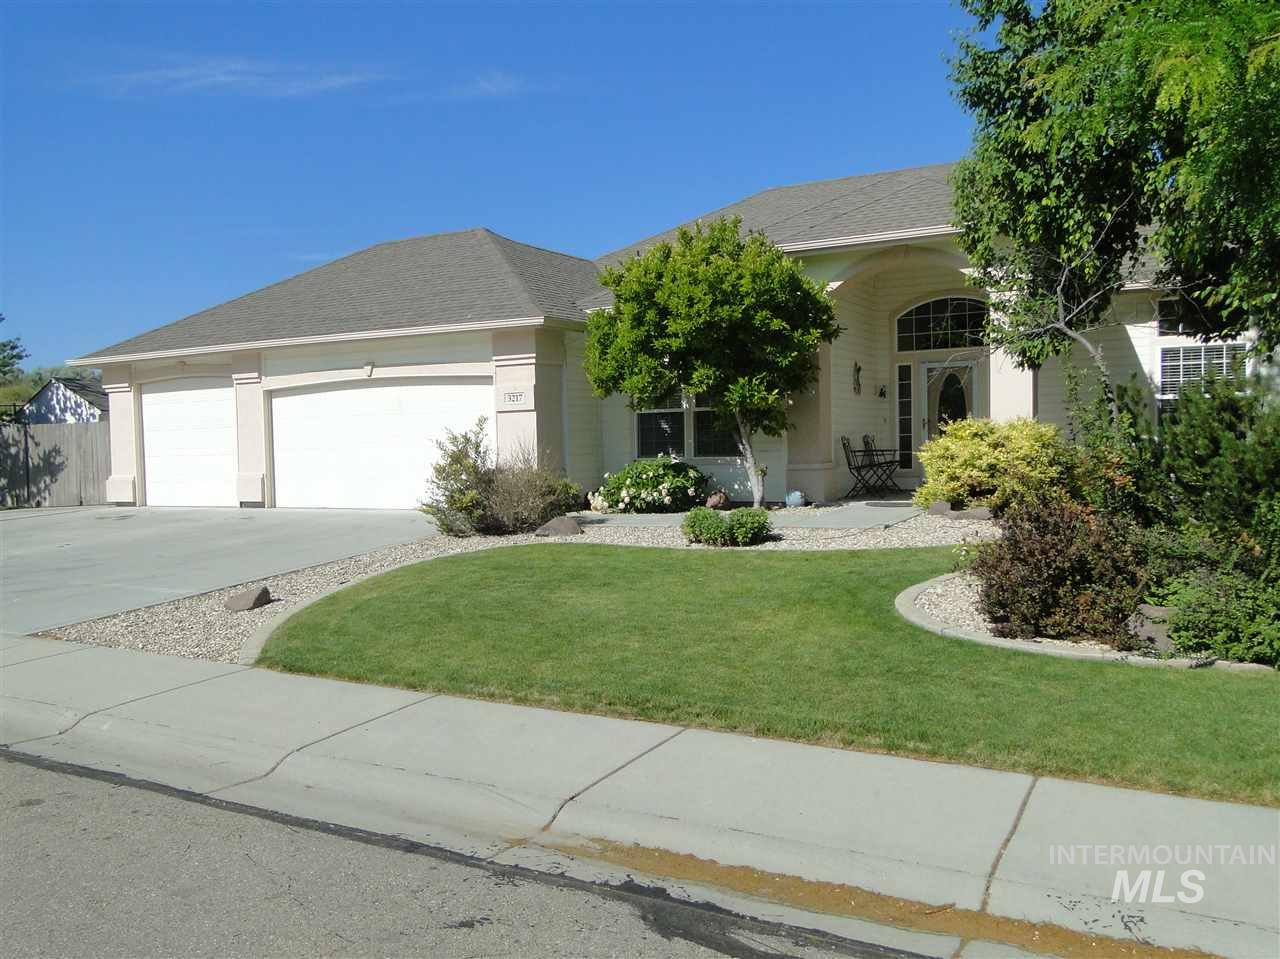 3217 S Kokomo, Nampa, Idaho 83686-0000, 3 Bedrooms, 2 Bathrooms, Residential For Sale, Price $315,000, 98733826